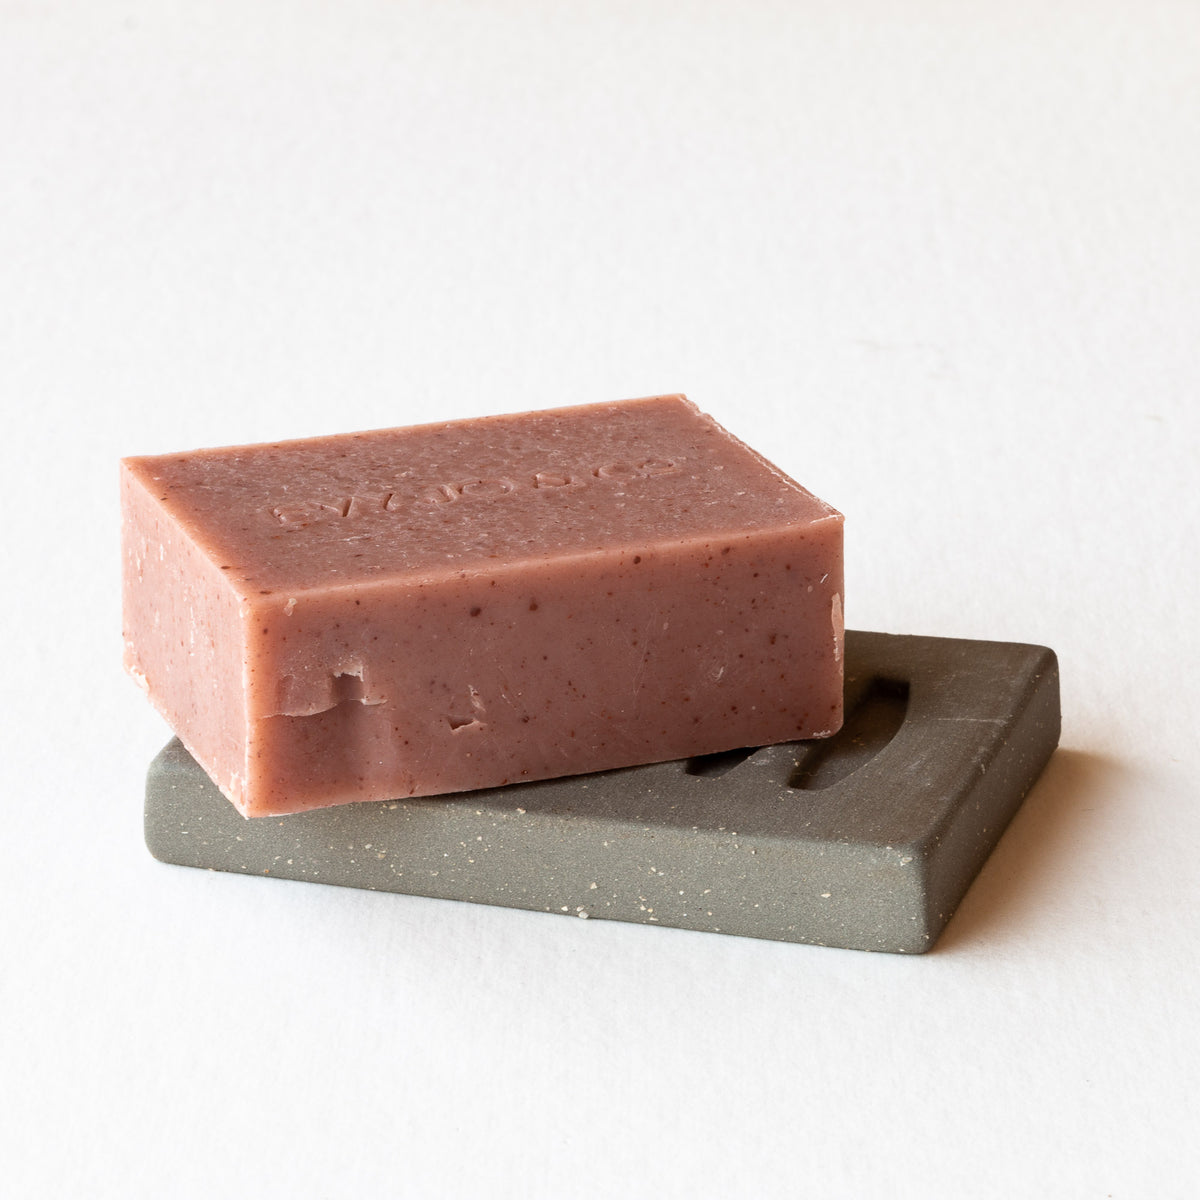 Shown With Soap - Grey Clay Ceramic Soap Dish / Handmade Soap Holder - Sold by Chic & Basta